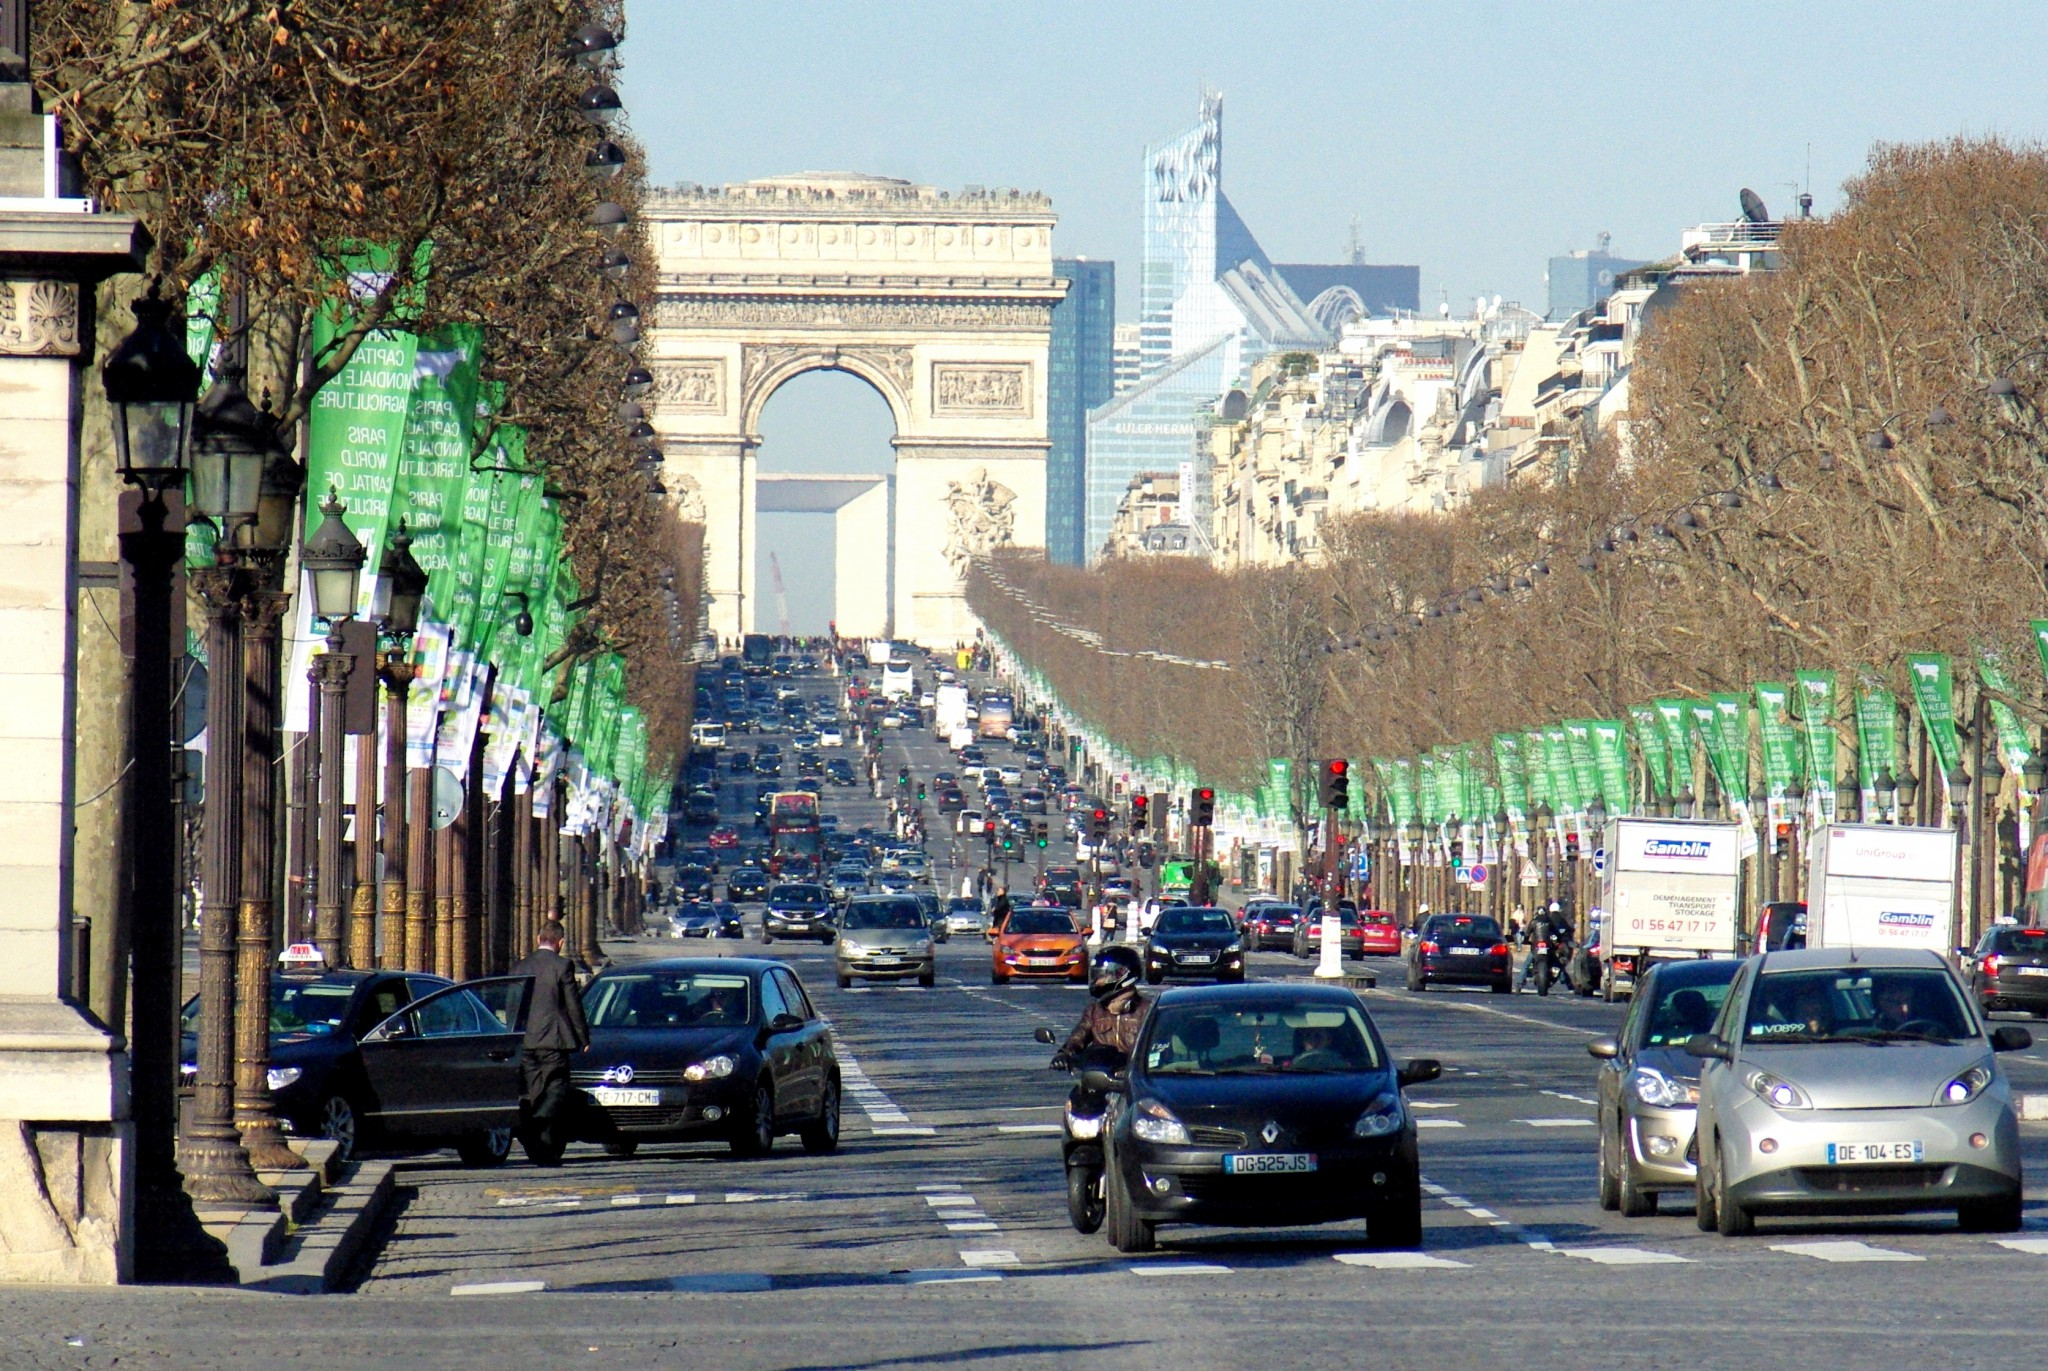 an introduction to the champs elysees an avenue in paris france Champs-elysees: this is paris - see 18,237 traveler reviews, 7,600 candid photos, and great deals for paris, france, at tripadvisor.